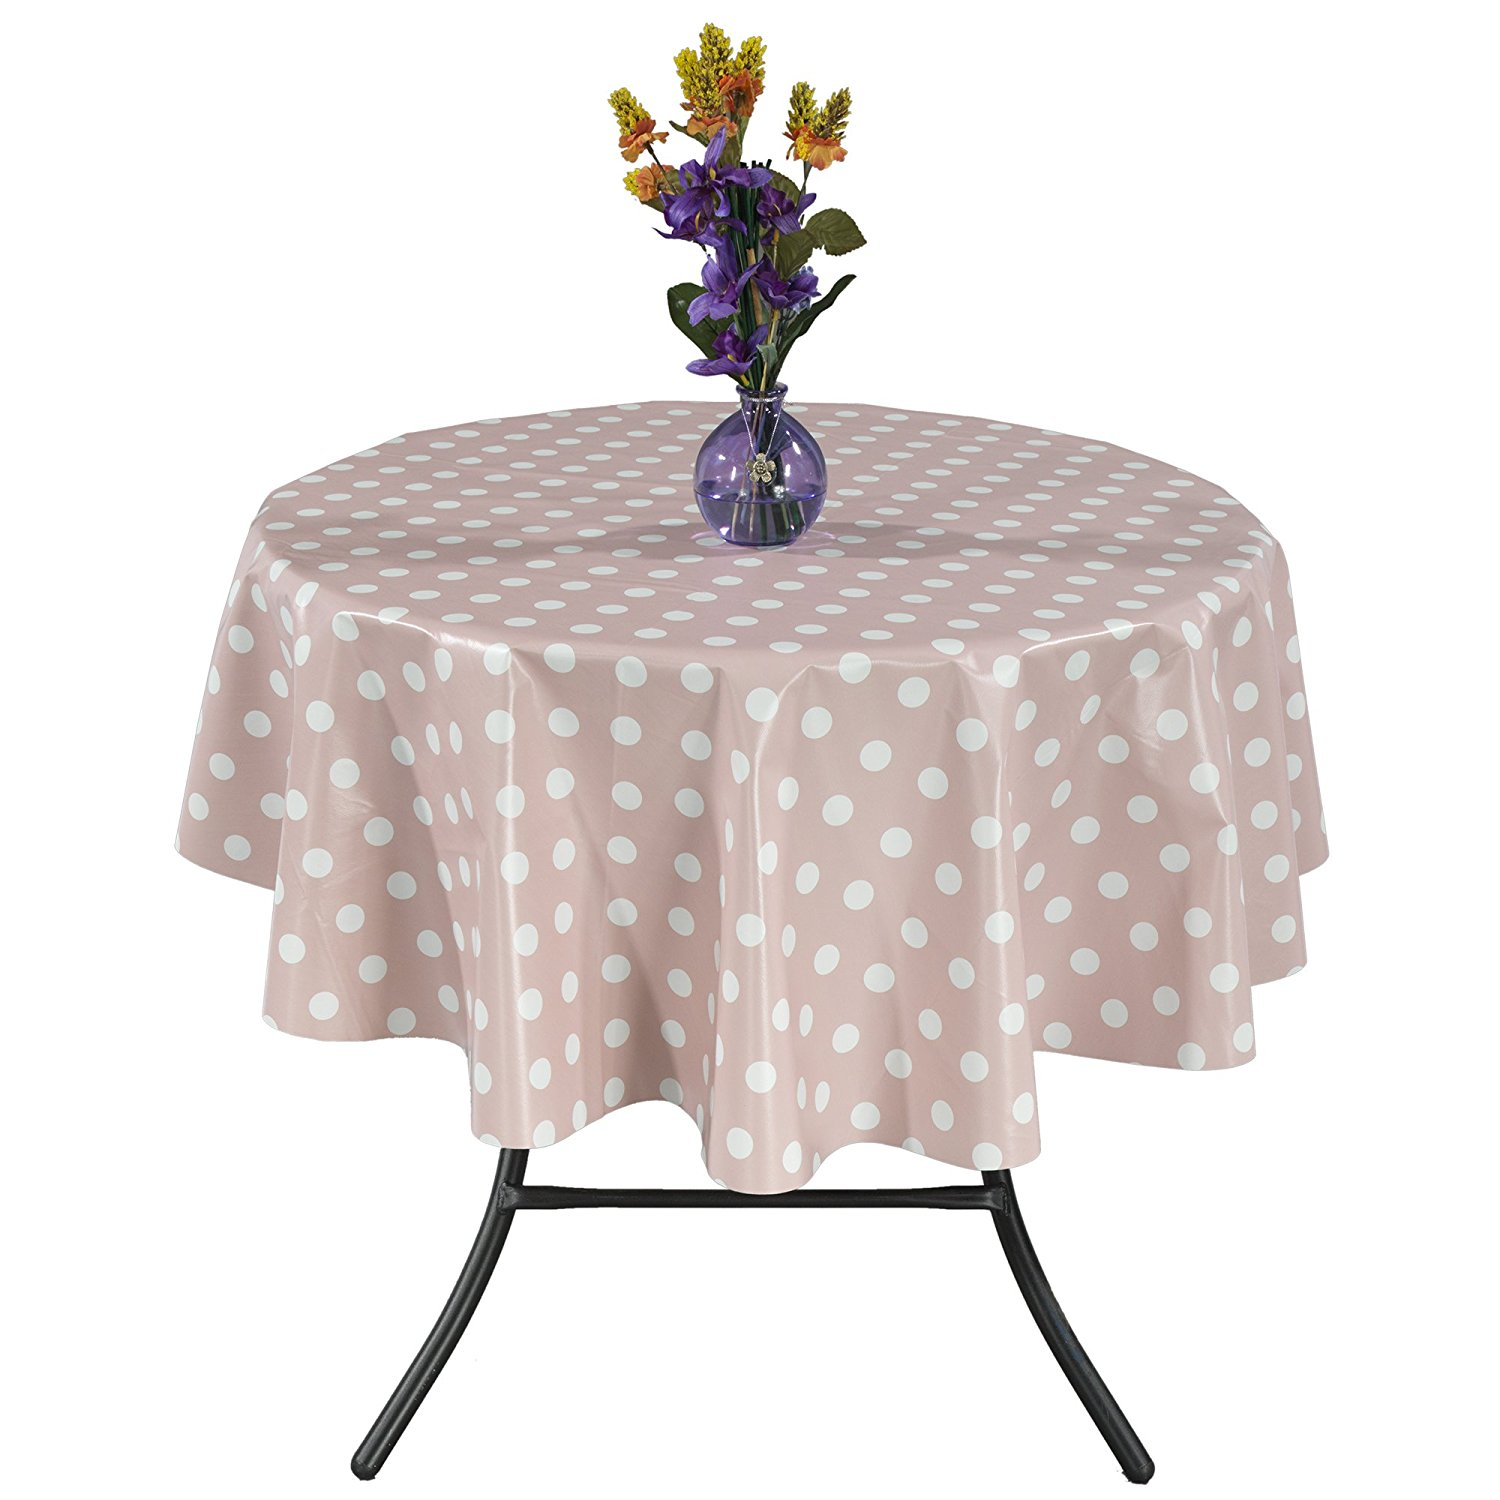 "Ottomanson Vinyl Polka Dot Design 55"" Round Indoor & Outdoor Tablecloth Non-Woven Backing"